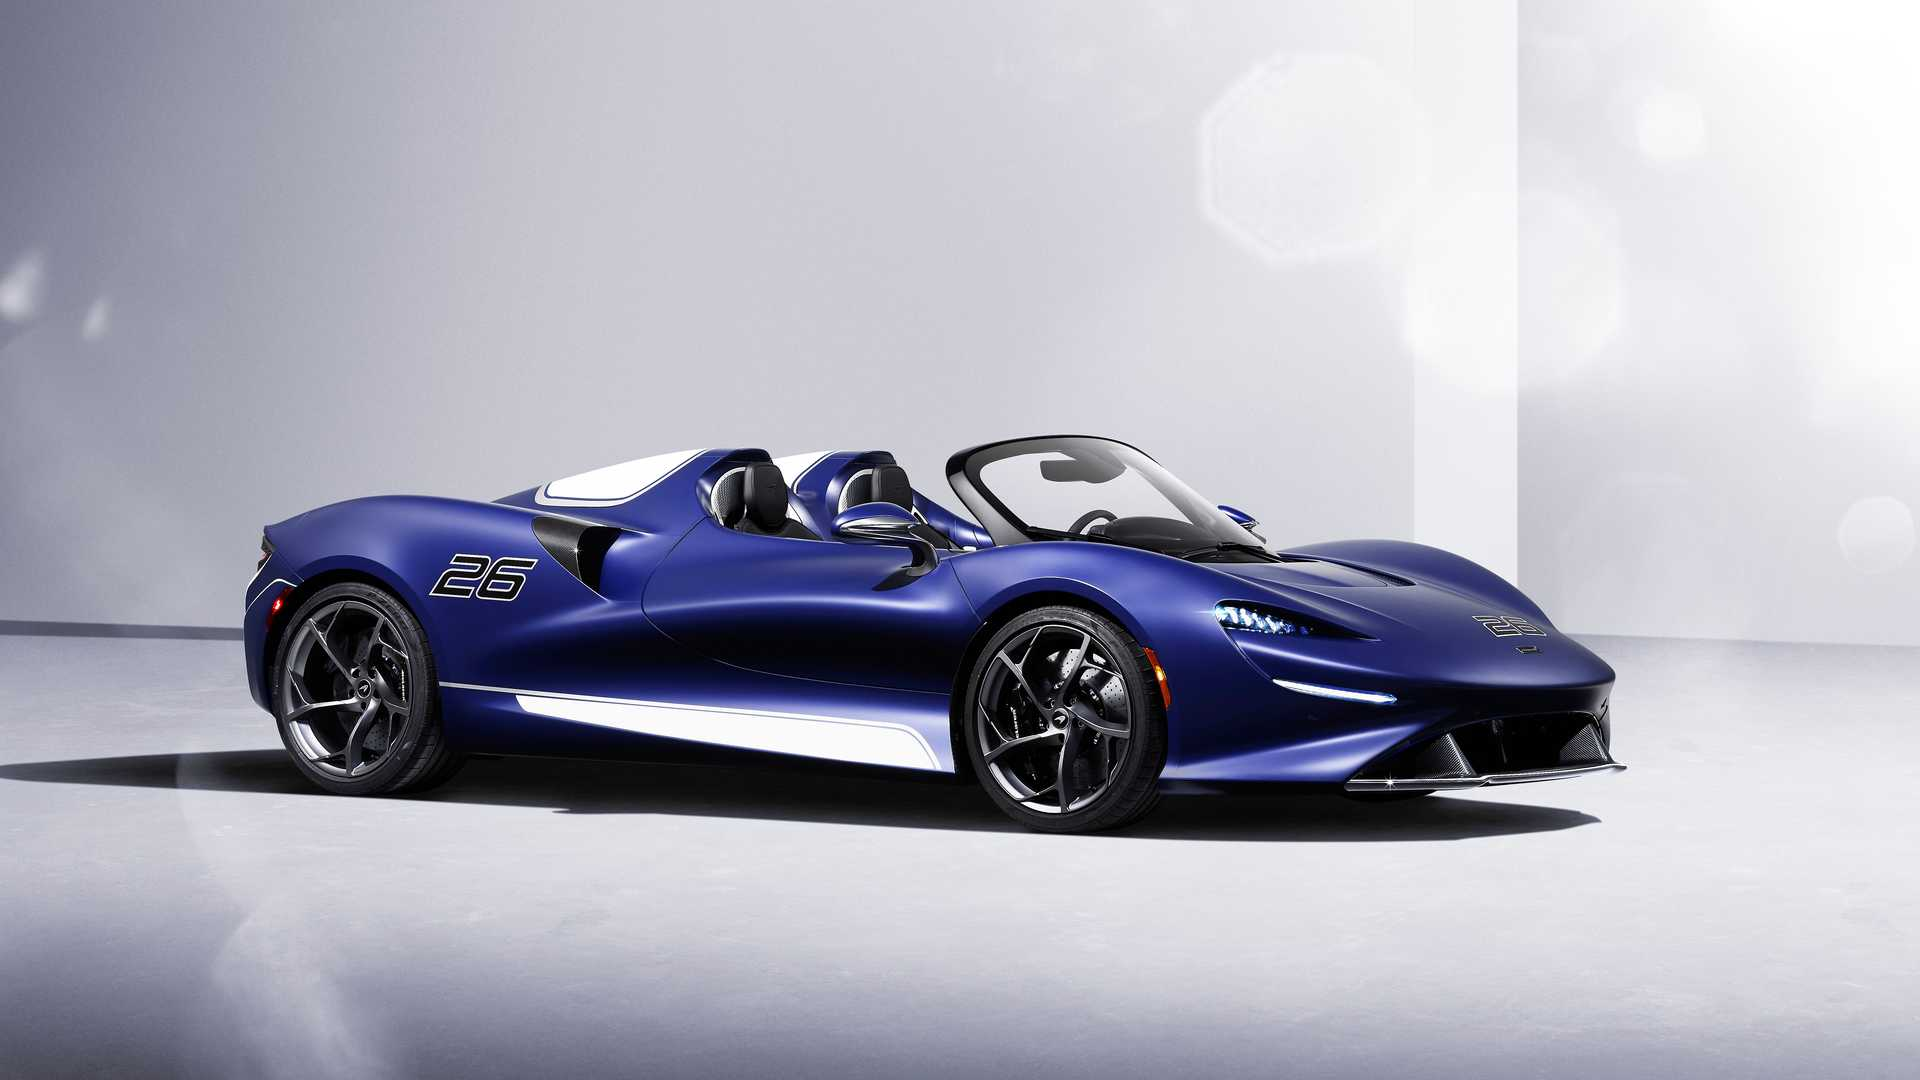 The McLaren Elva speedster was unveiled in 2019 and has now finally reached production. The company cut the original plans from 399 down to just 149 units, some of them without the windshield.